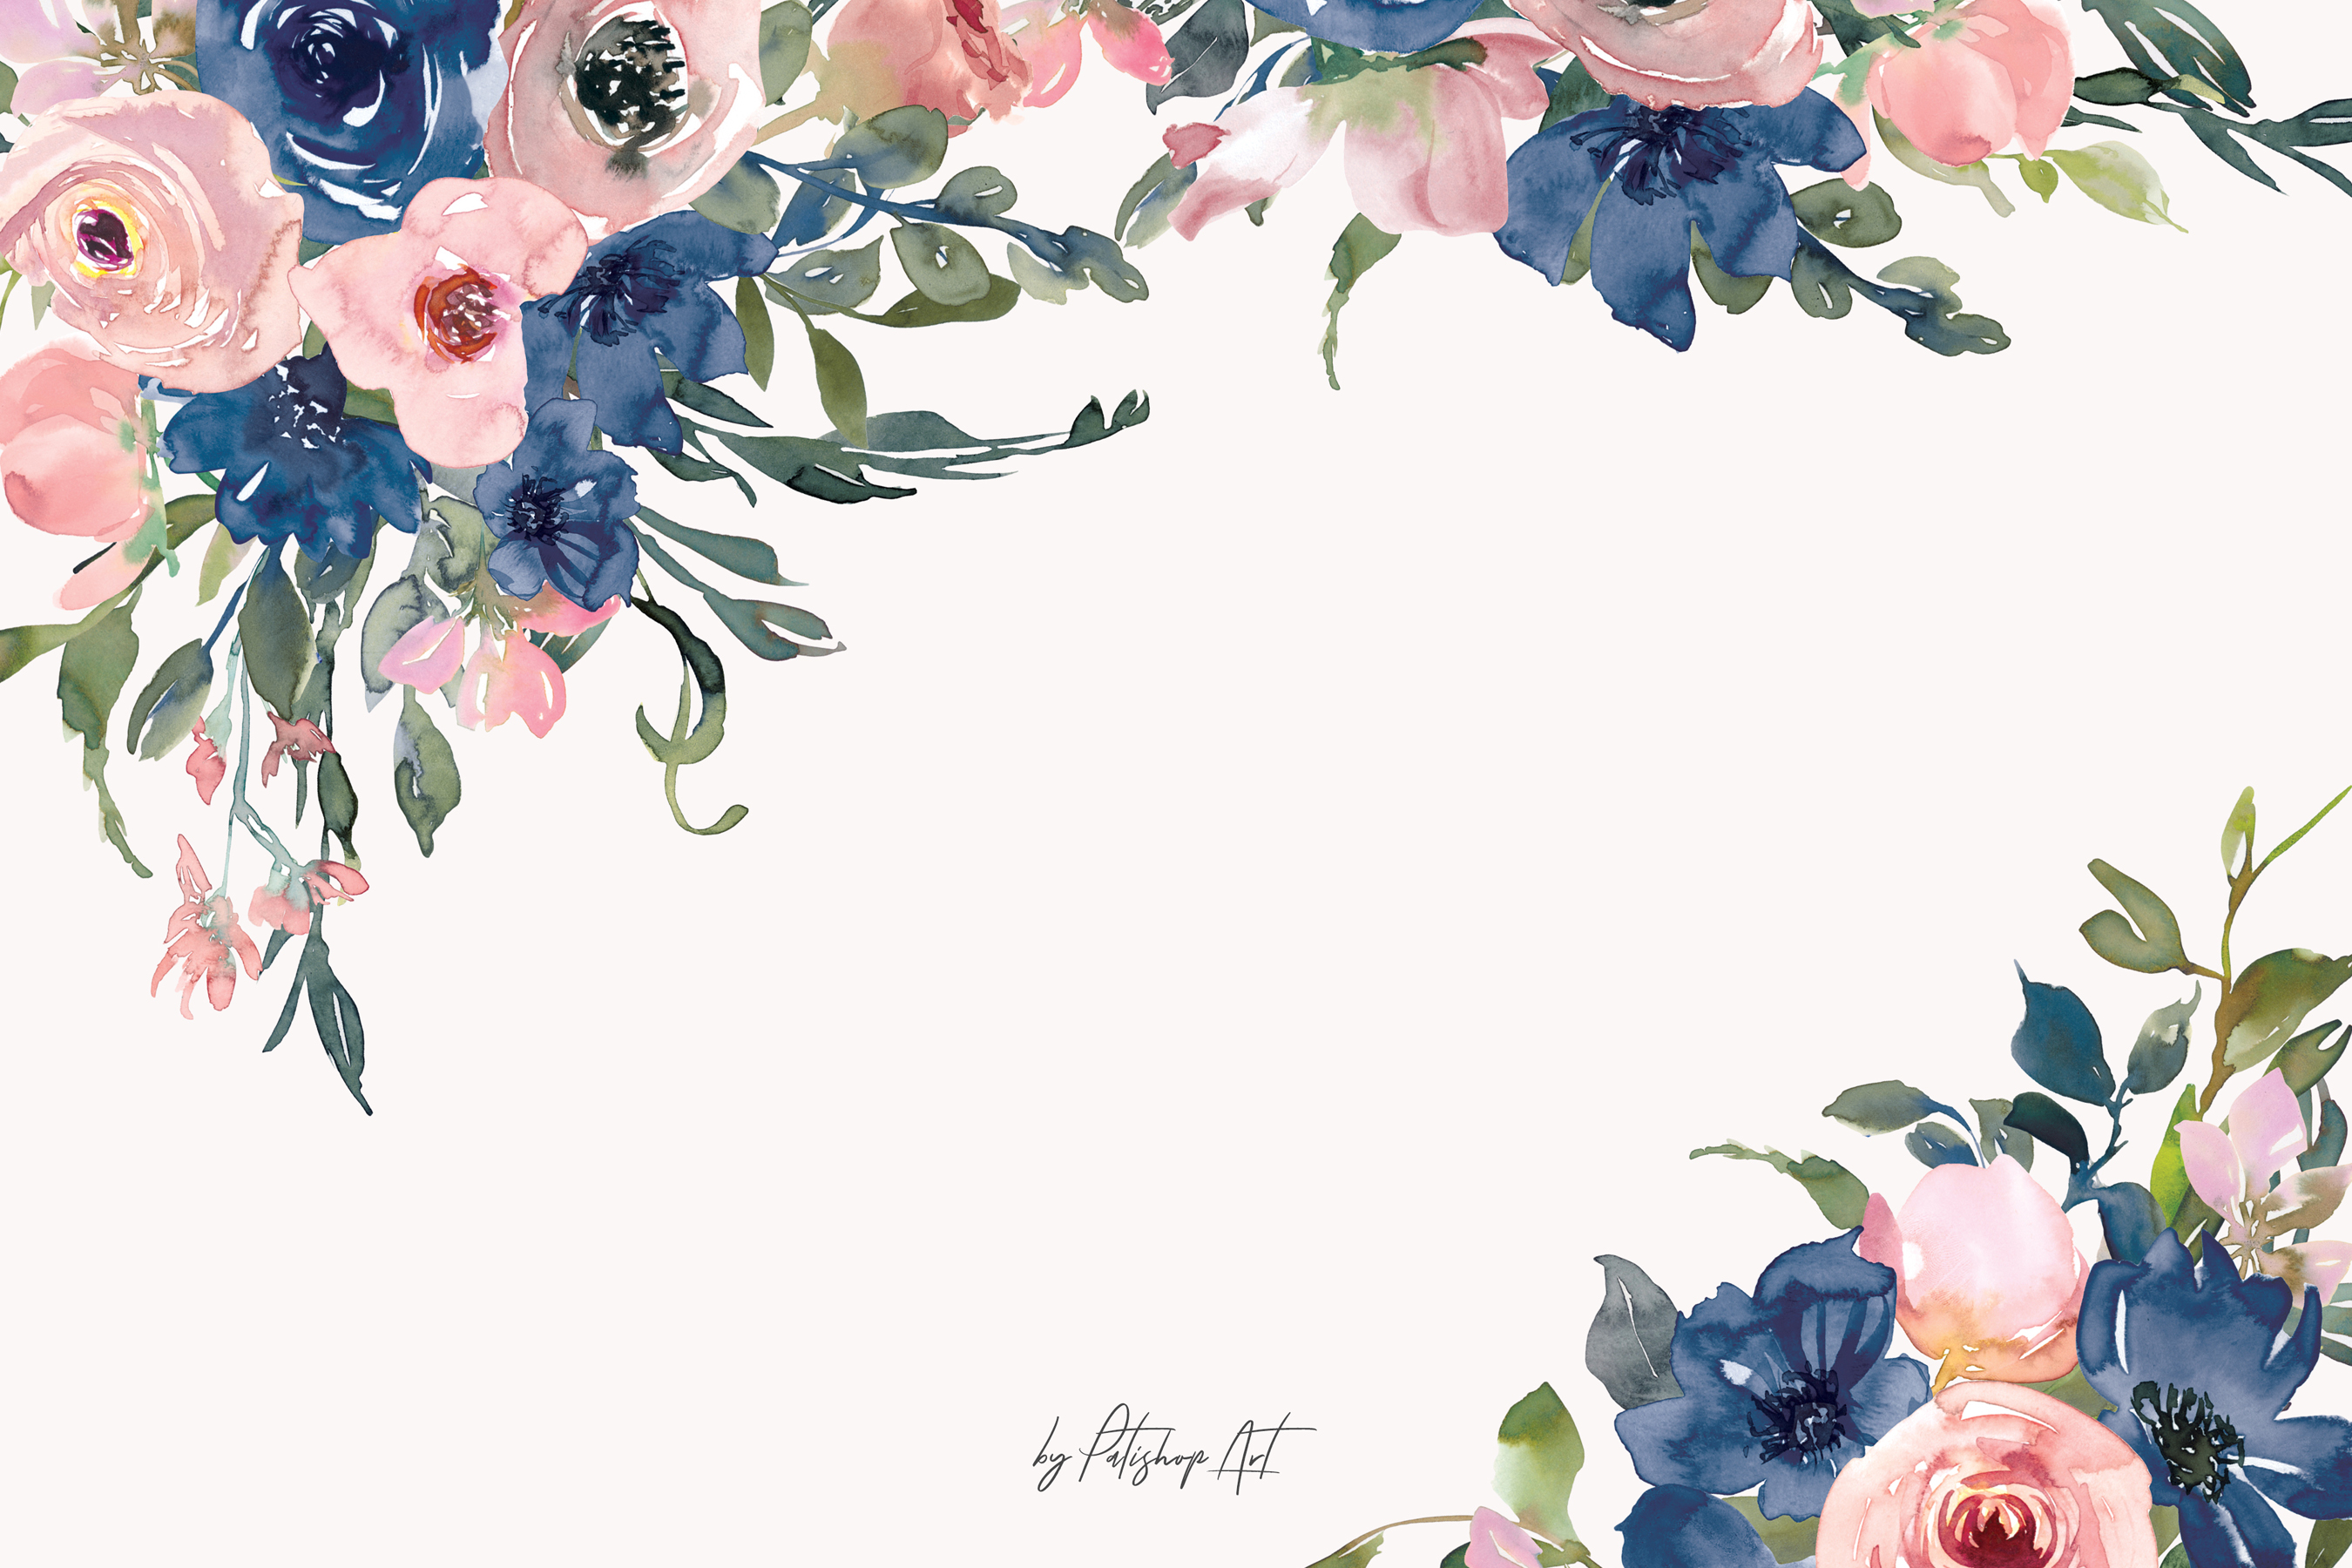 Watercolor blush and navy flowers clipart banner freeuse library Watercolor Navy and Blush Floral Bouquet Clipart banner freeuse library